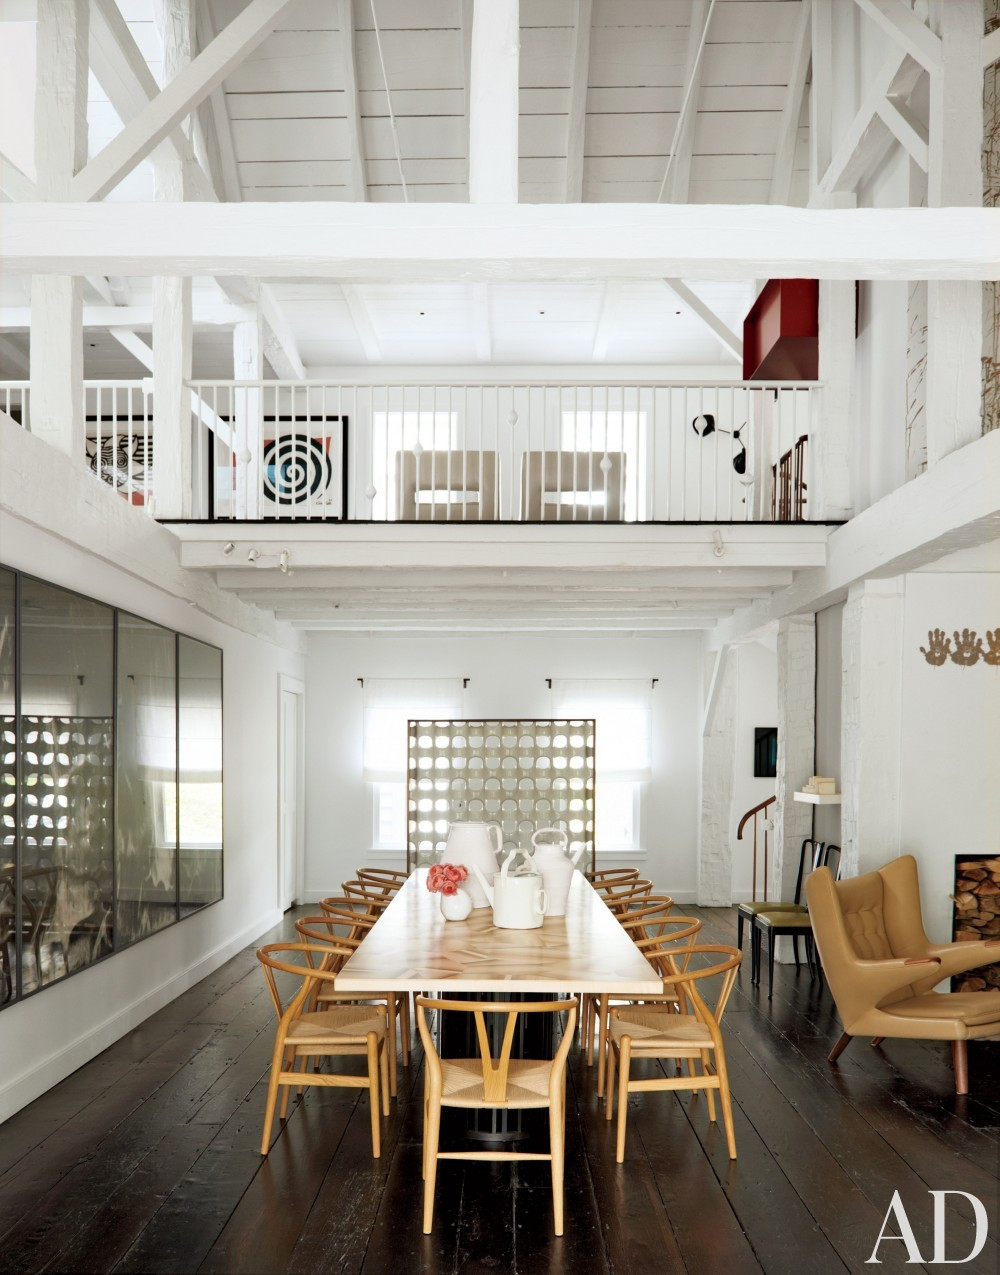 Modern Dining Room by India Mahdavi in Litchfield County, CT